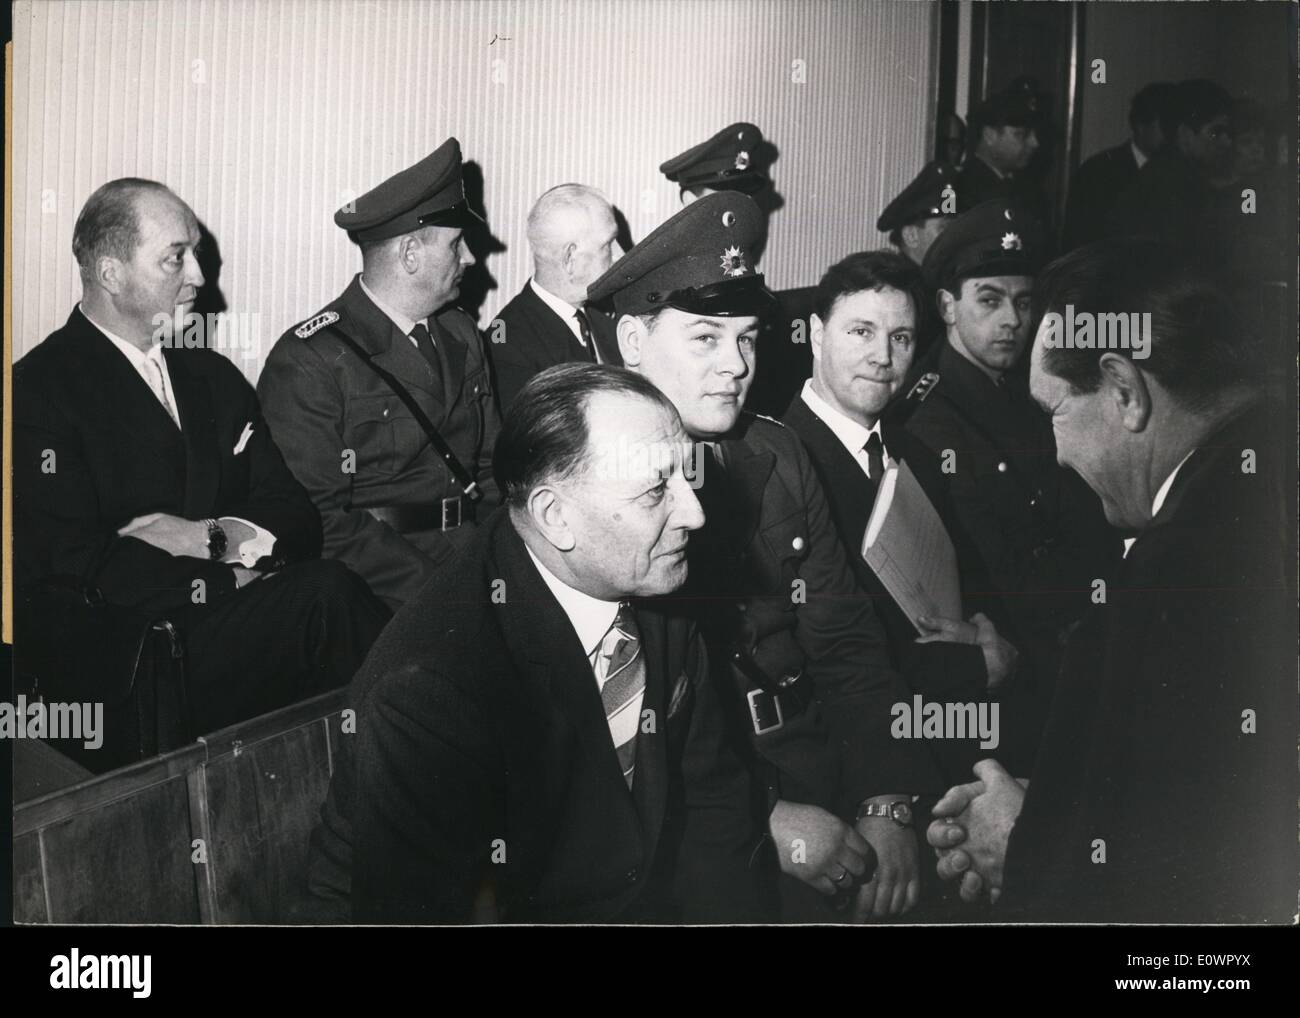 Feb. 02, 1964 - SS Cavalry facing the Law: Five former SS officers of the SS Cavalry Regiment 11 are being tried by the Braun-schweig grand Jury (schwurgericht). today the massacre of jews in the former polish now soviet town of Pinsk, where far behind the front line 5200 Jews were shot to death in August 1941. among the 100 summoned witnesses there is former SS general von dem Bach-Zelewski. Photo Shows Walter Dunsch speaking to his defender, in the last row from L to R: former ''Stumfuhrer'' Hans Walter Zech- Nenntwich, o police officer, and former ''SS obersturmbannfuhrer'' Fanz Magill. - Stock Image